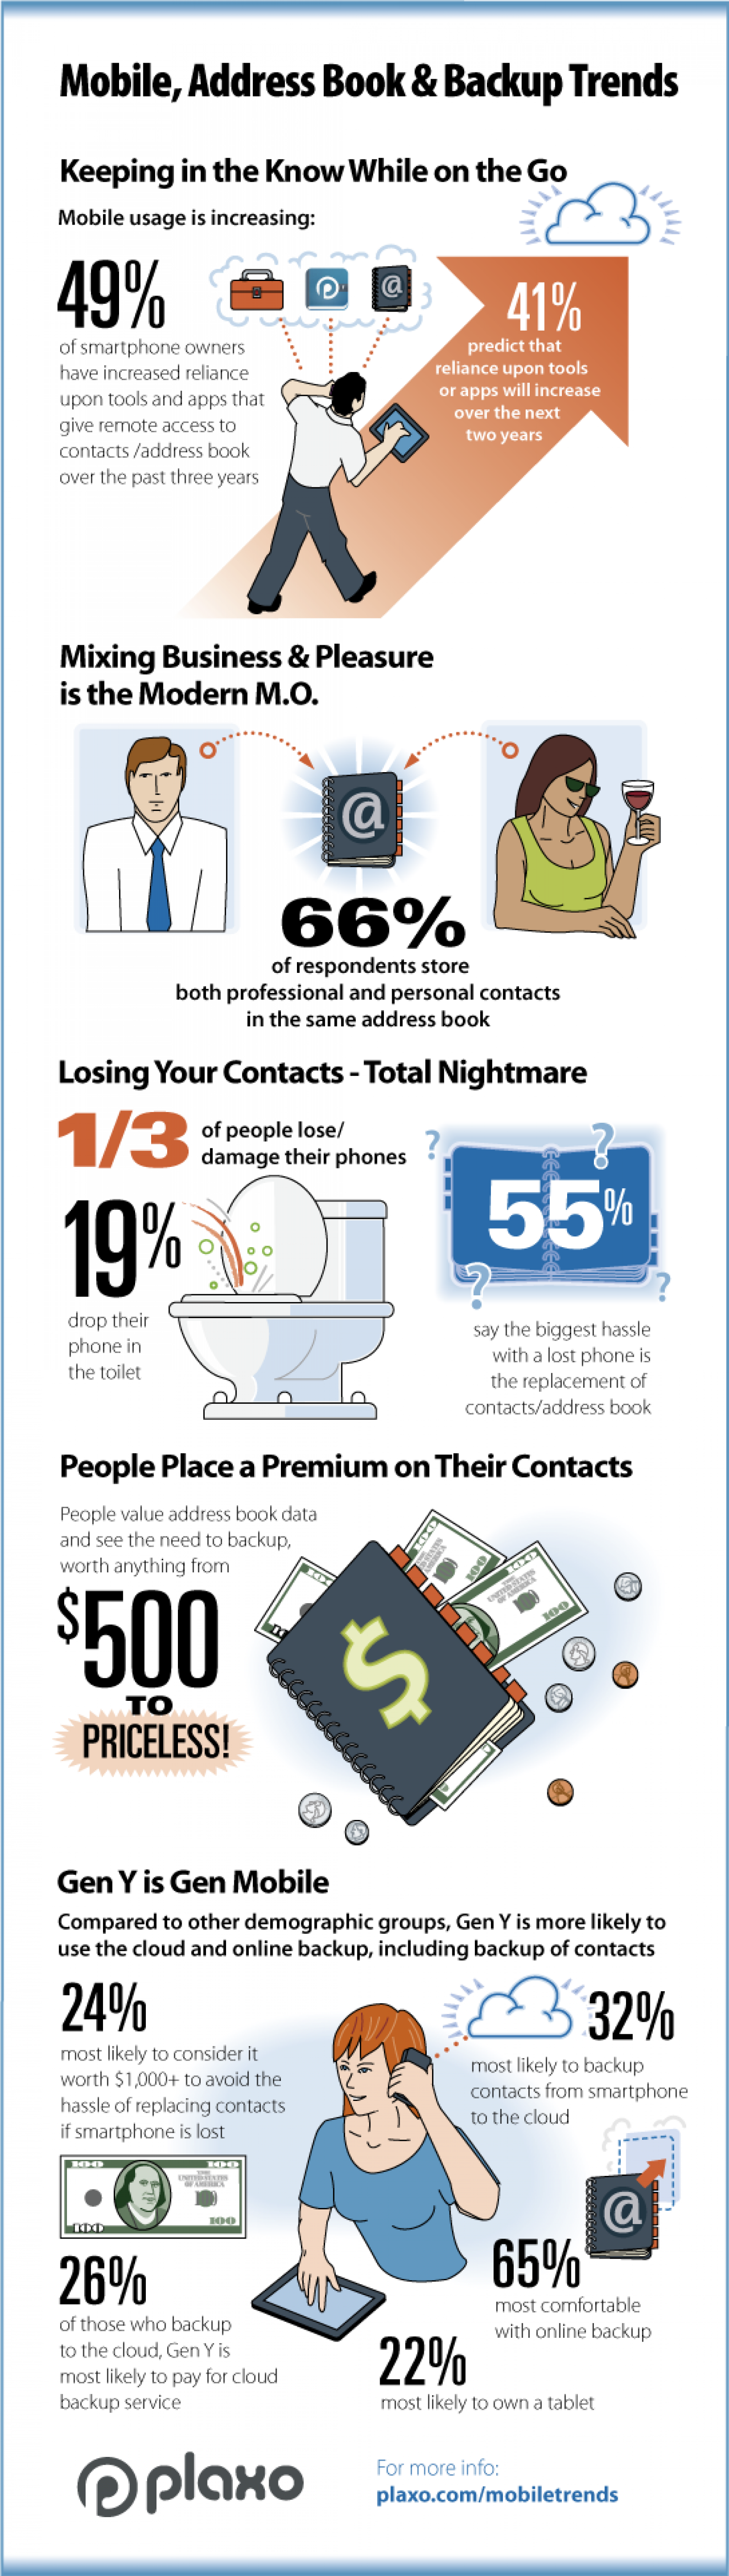 Mobile, Address Book & Backup Trends Infographic